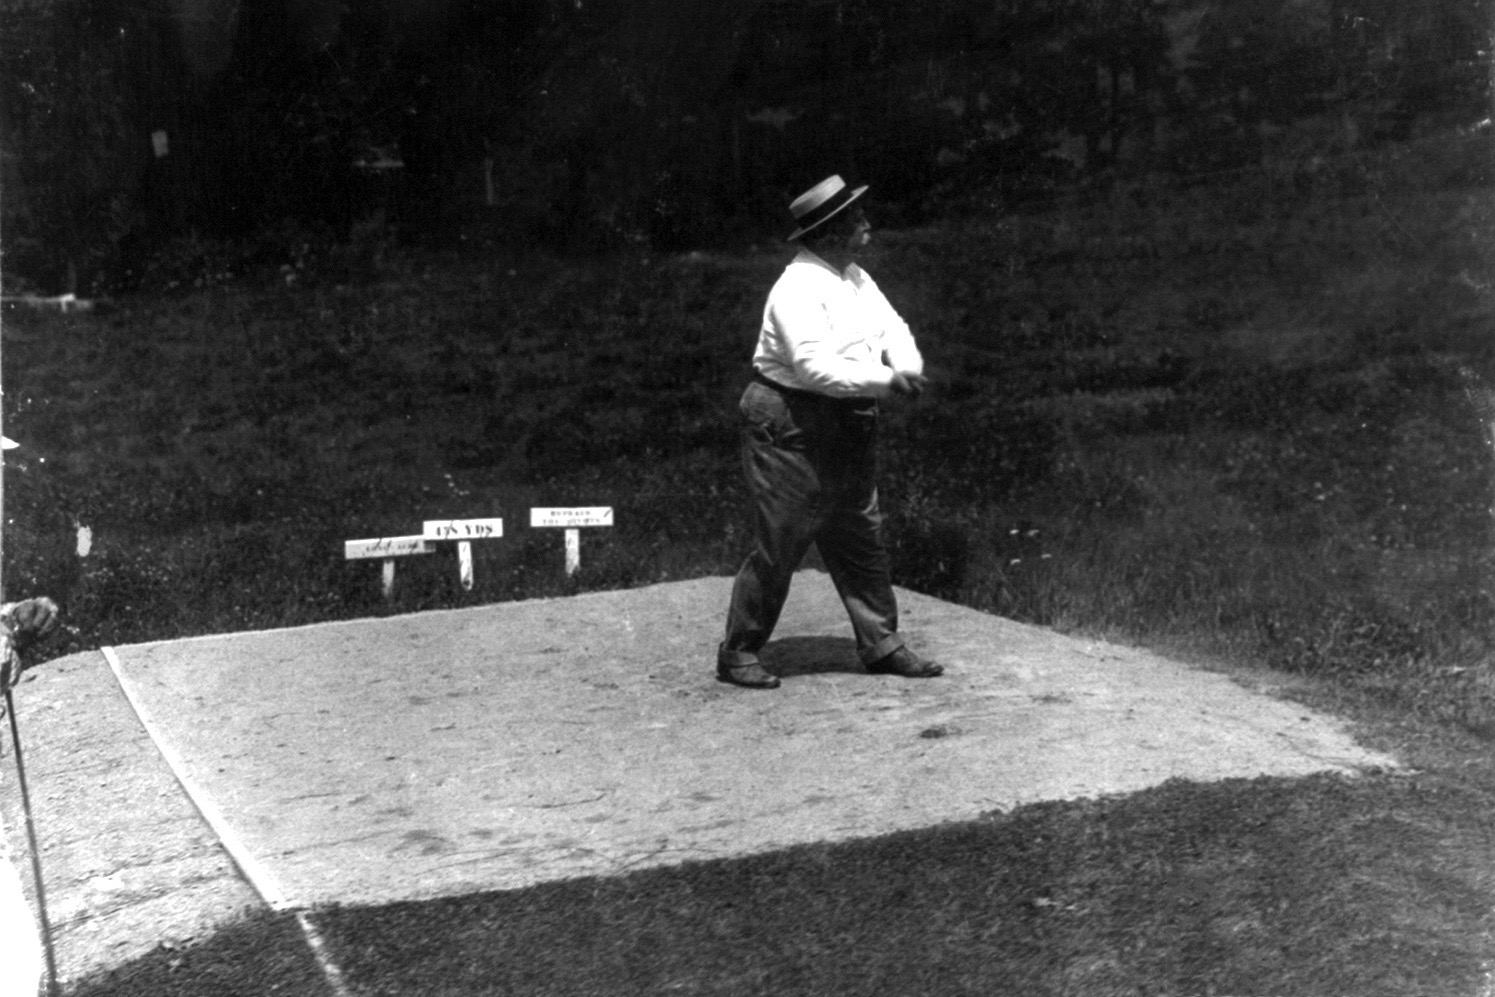 Pictured is William Howard Taft playing a round of golf.